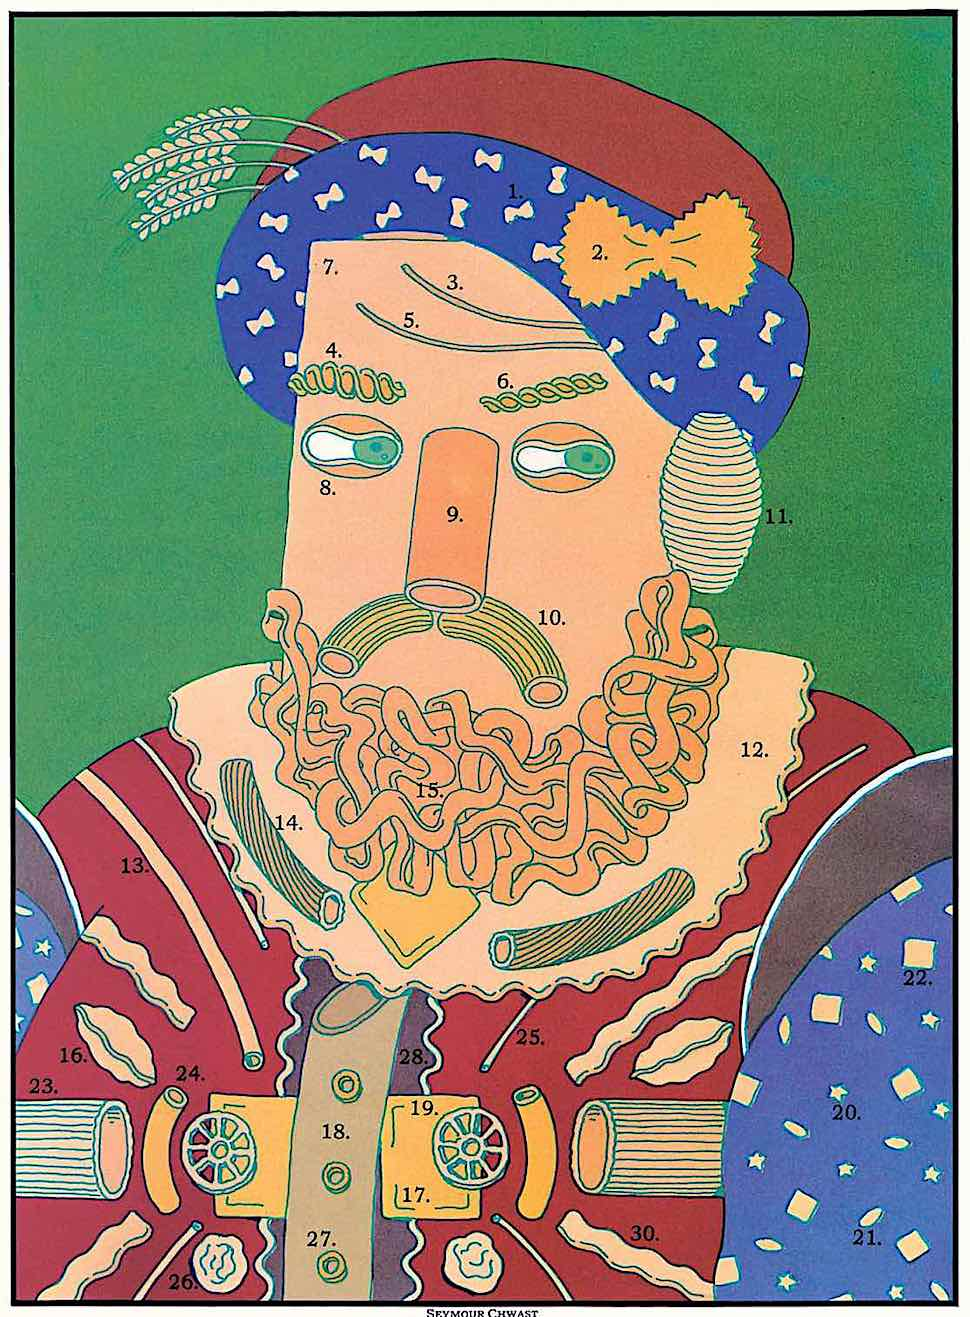 a Seymour Chwast illustration of a king made of pasta